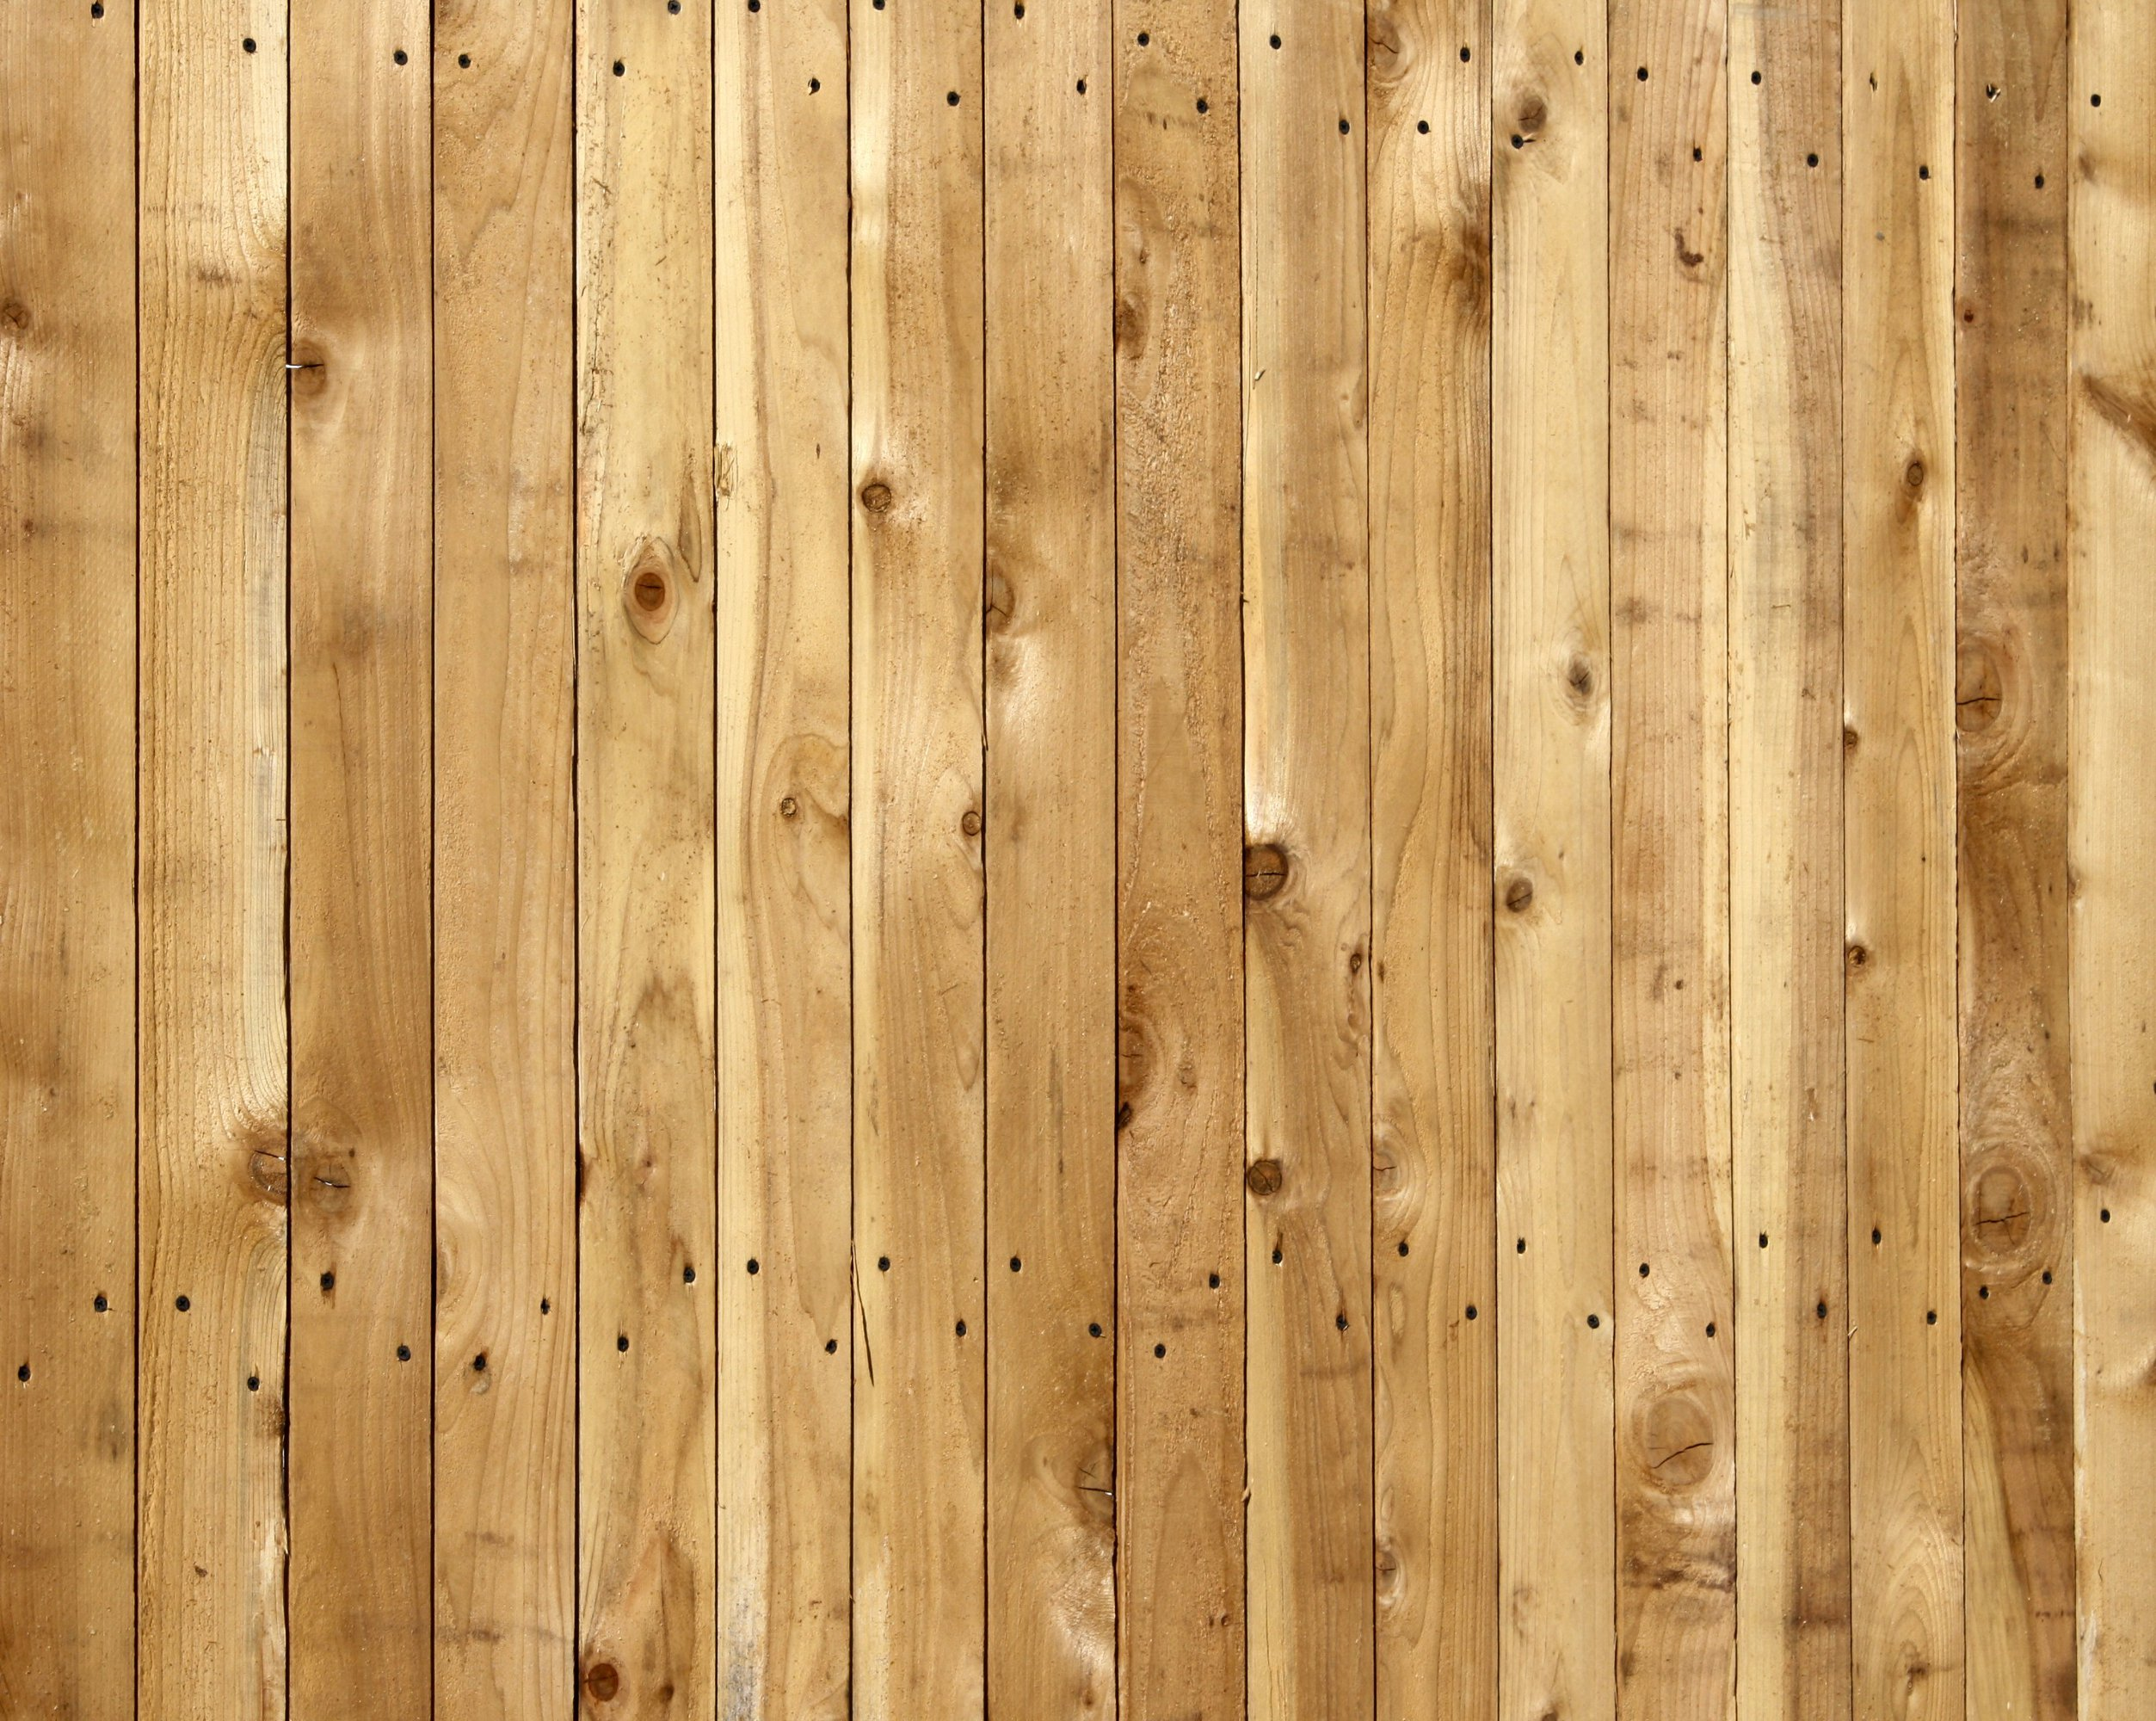 Wooden Background Eighty-eight | Photo Texture & Background